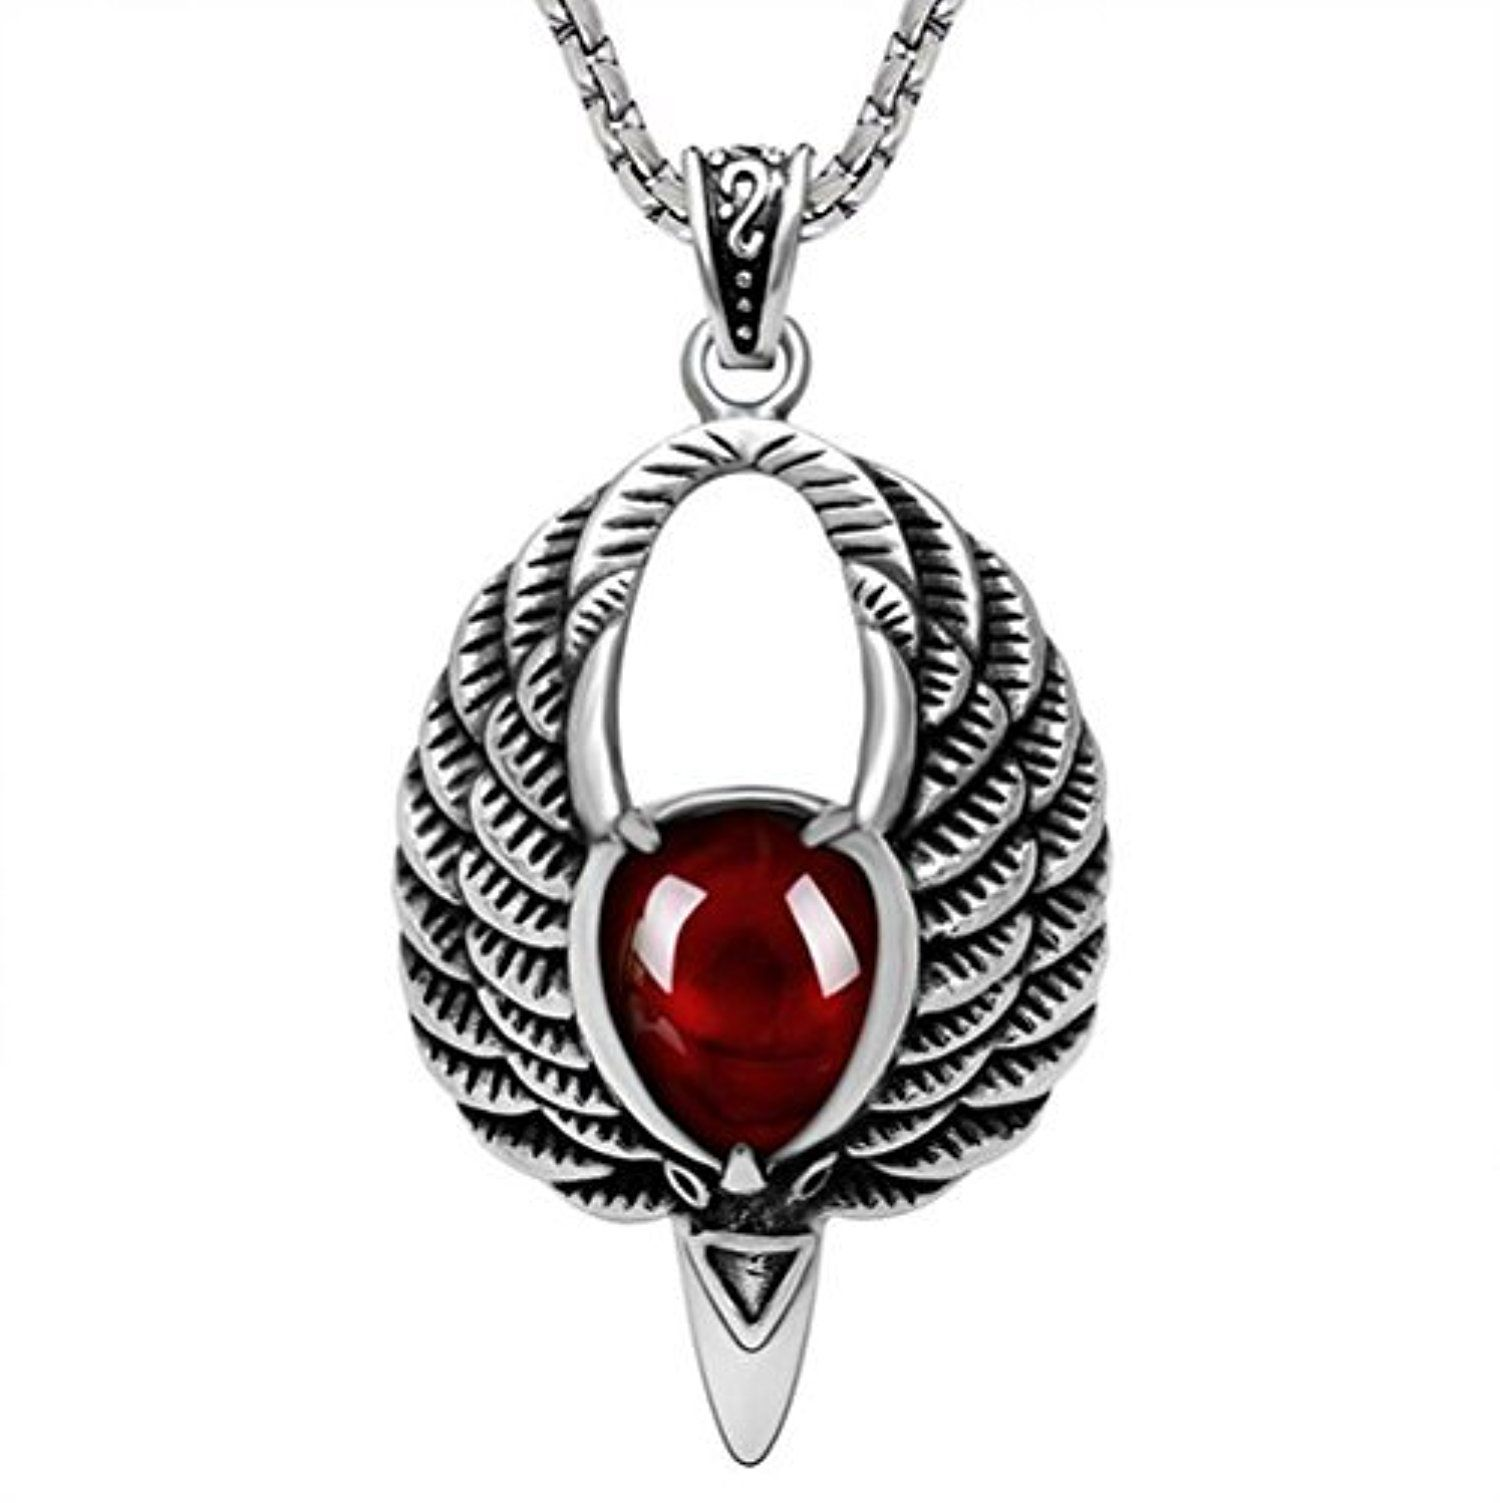 Retro garnet inlaid ruby bird wings pendant necklace men women retro garnet inlaid ruby bird wings pendant necklace men women jewelry 24 inch long by mens pendant necklaces awesome products selected by anna aloadofball Gallery